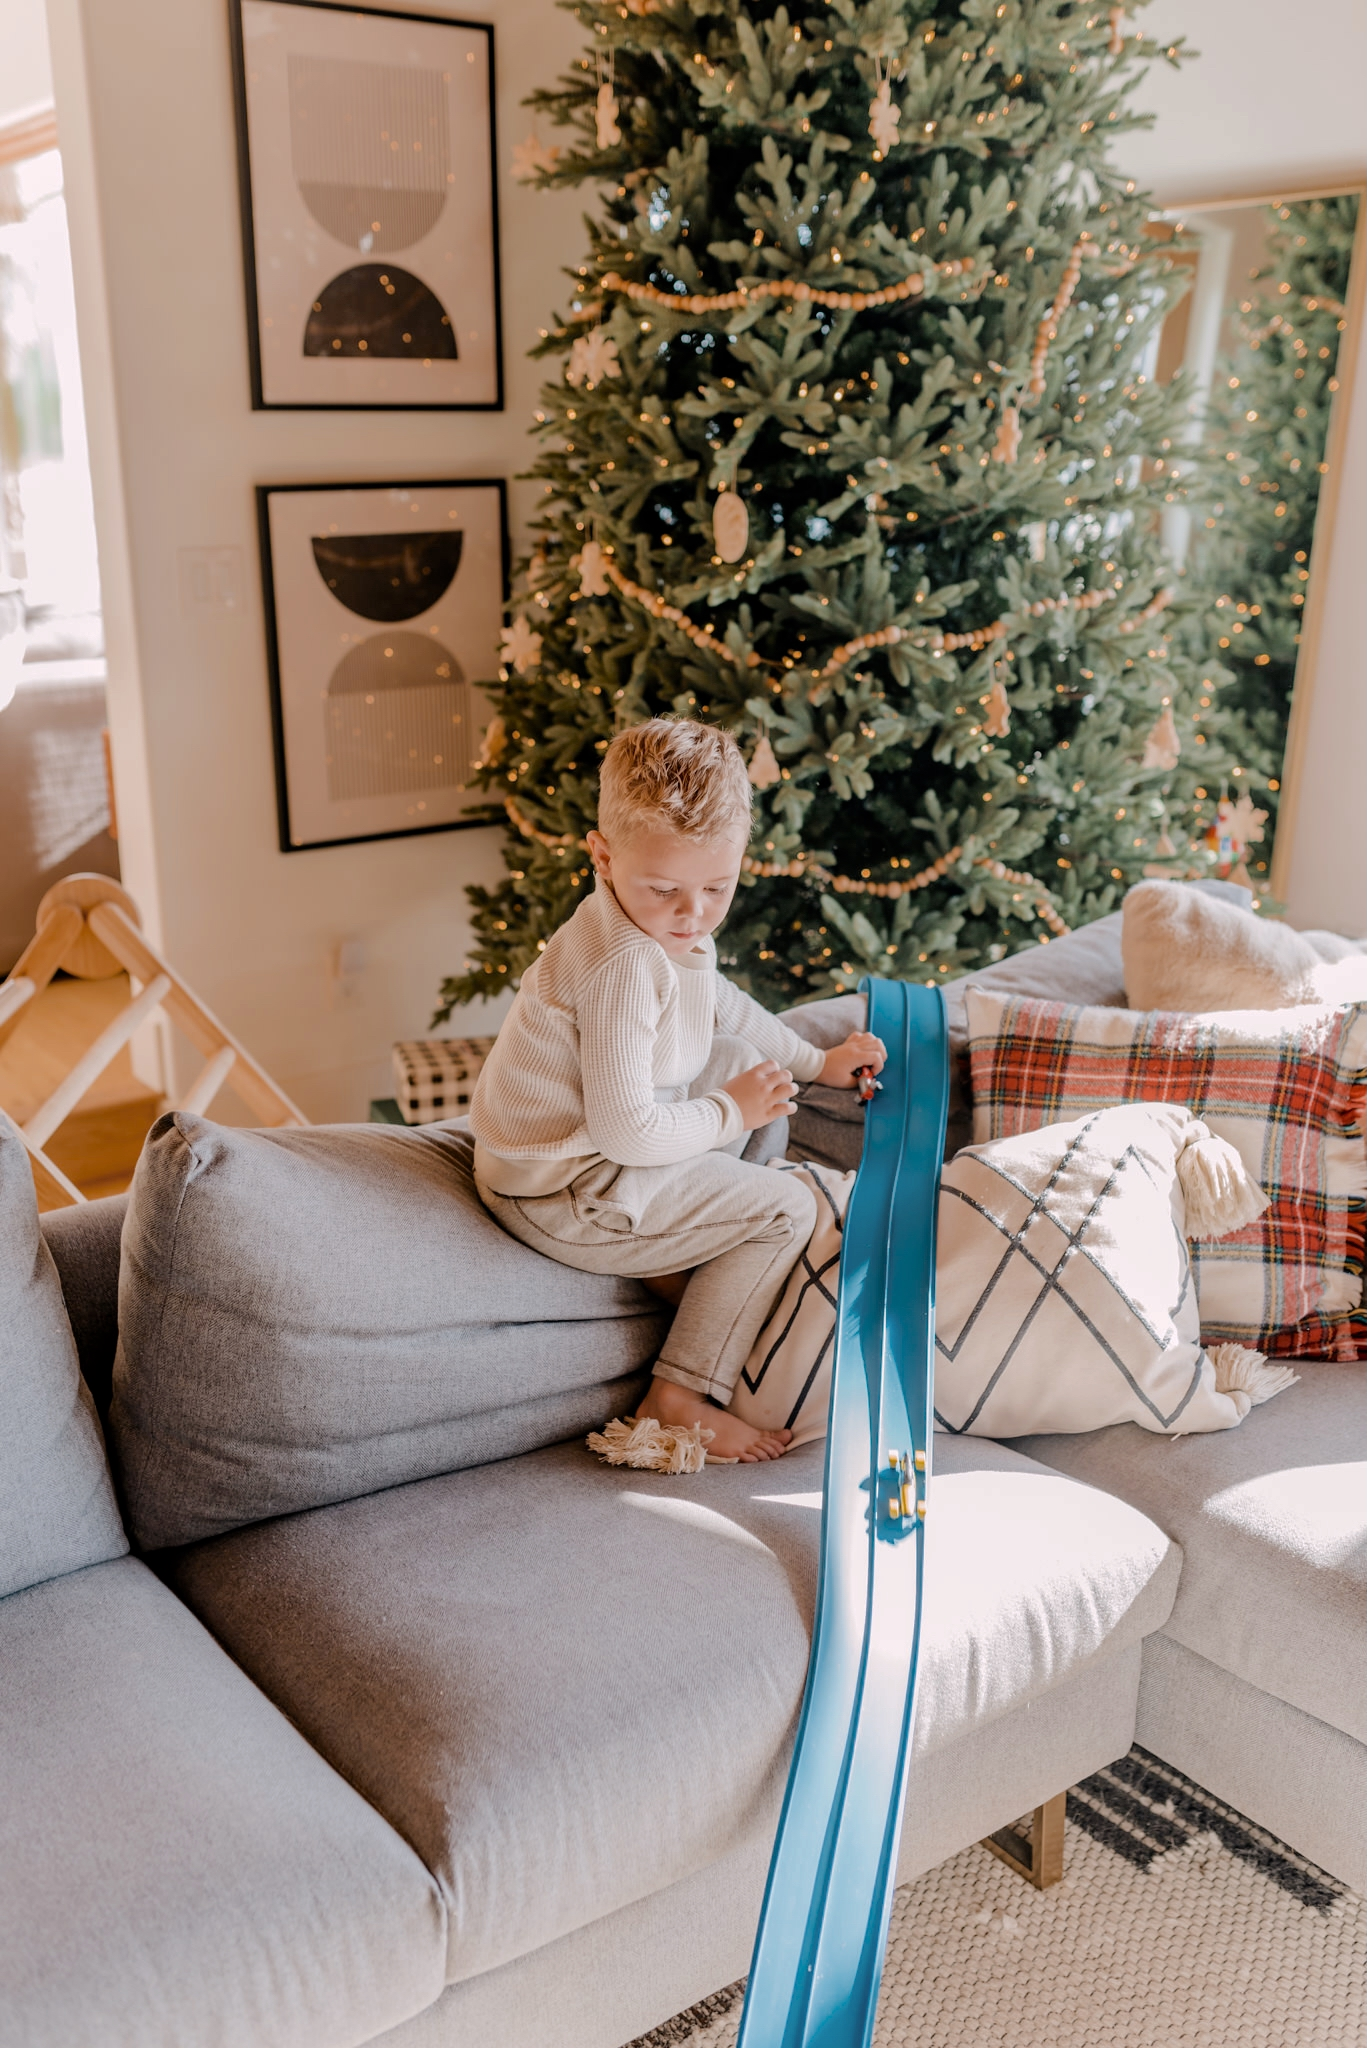 24 PRESCHOOLER GIFTS YOUR 3 TO 5 YEAR OLDS WILL LOVE featured by top San Diego lifestyle blogger, Navy Grace |Preschooler Gifts by popular San Diego lifestyle blog, Navy Grace: image of a young boy playing with cars.